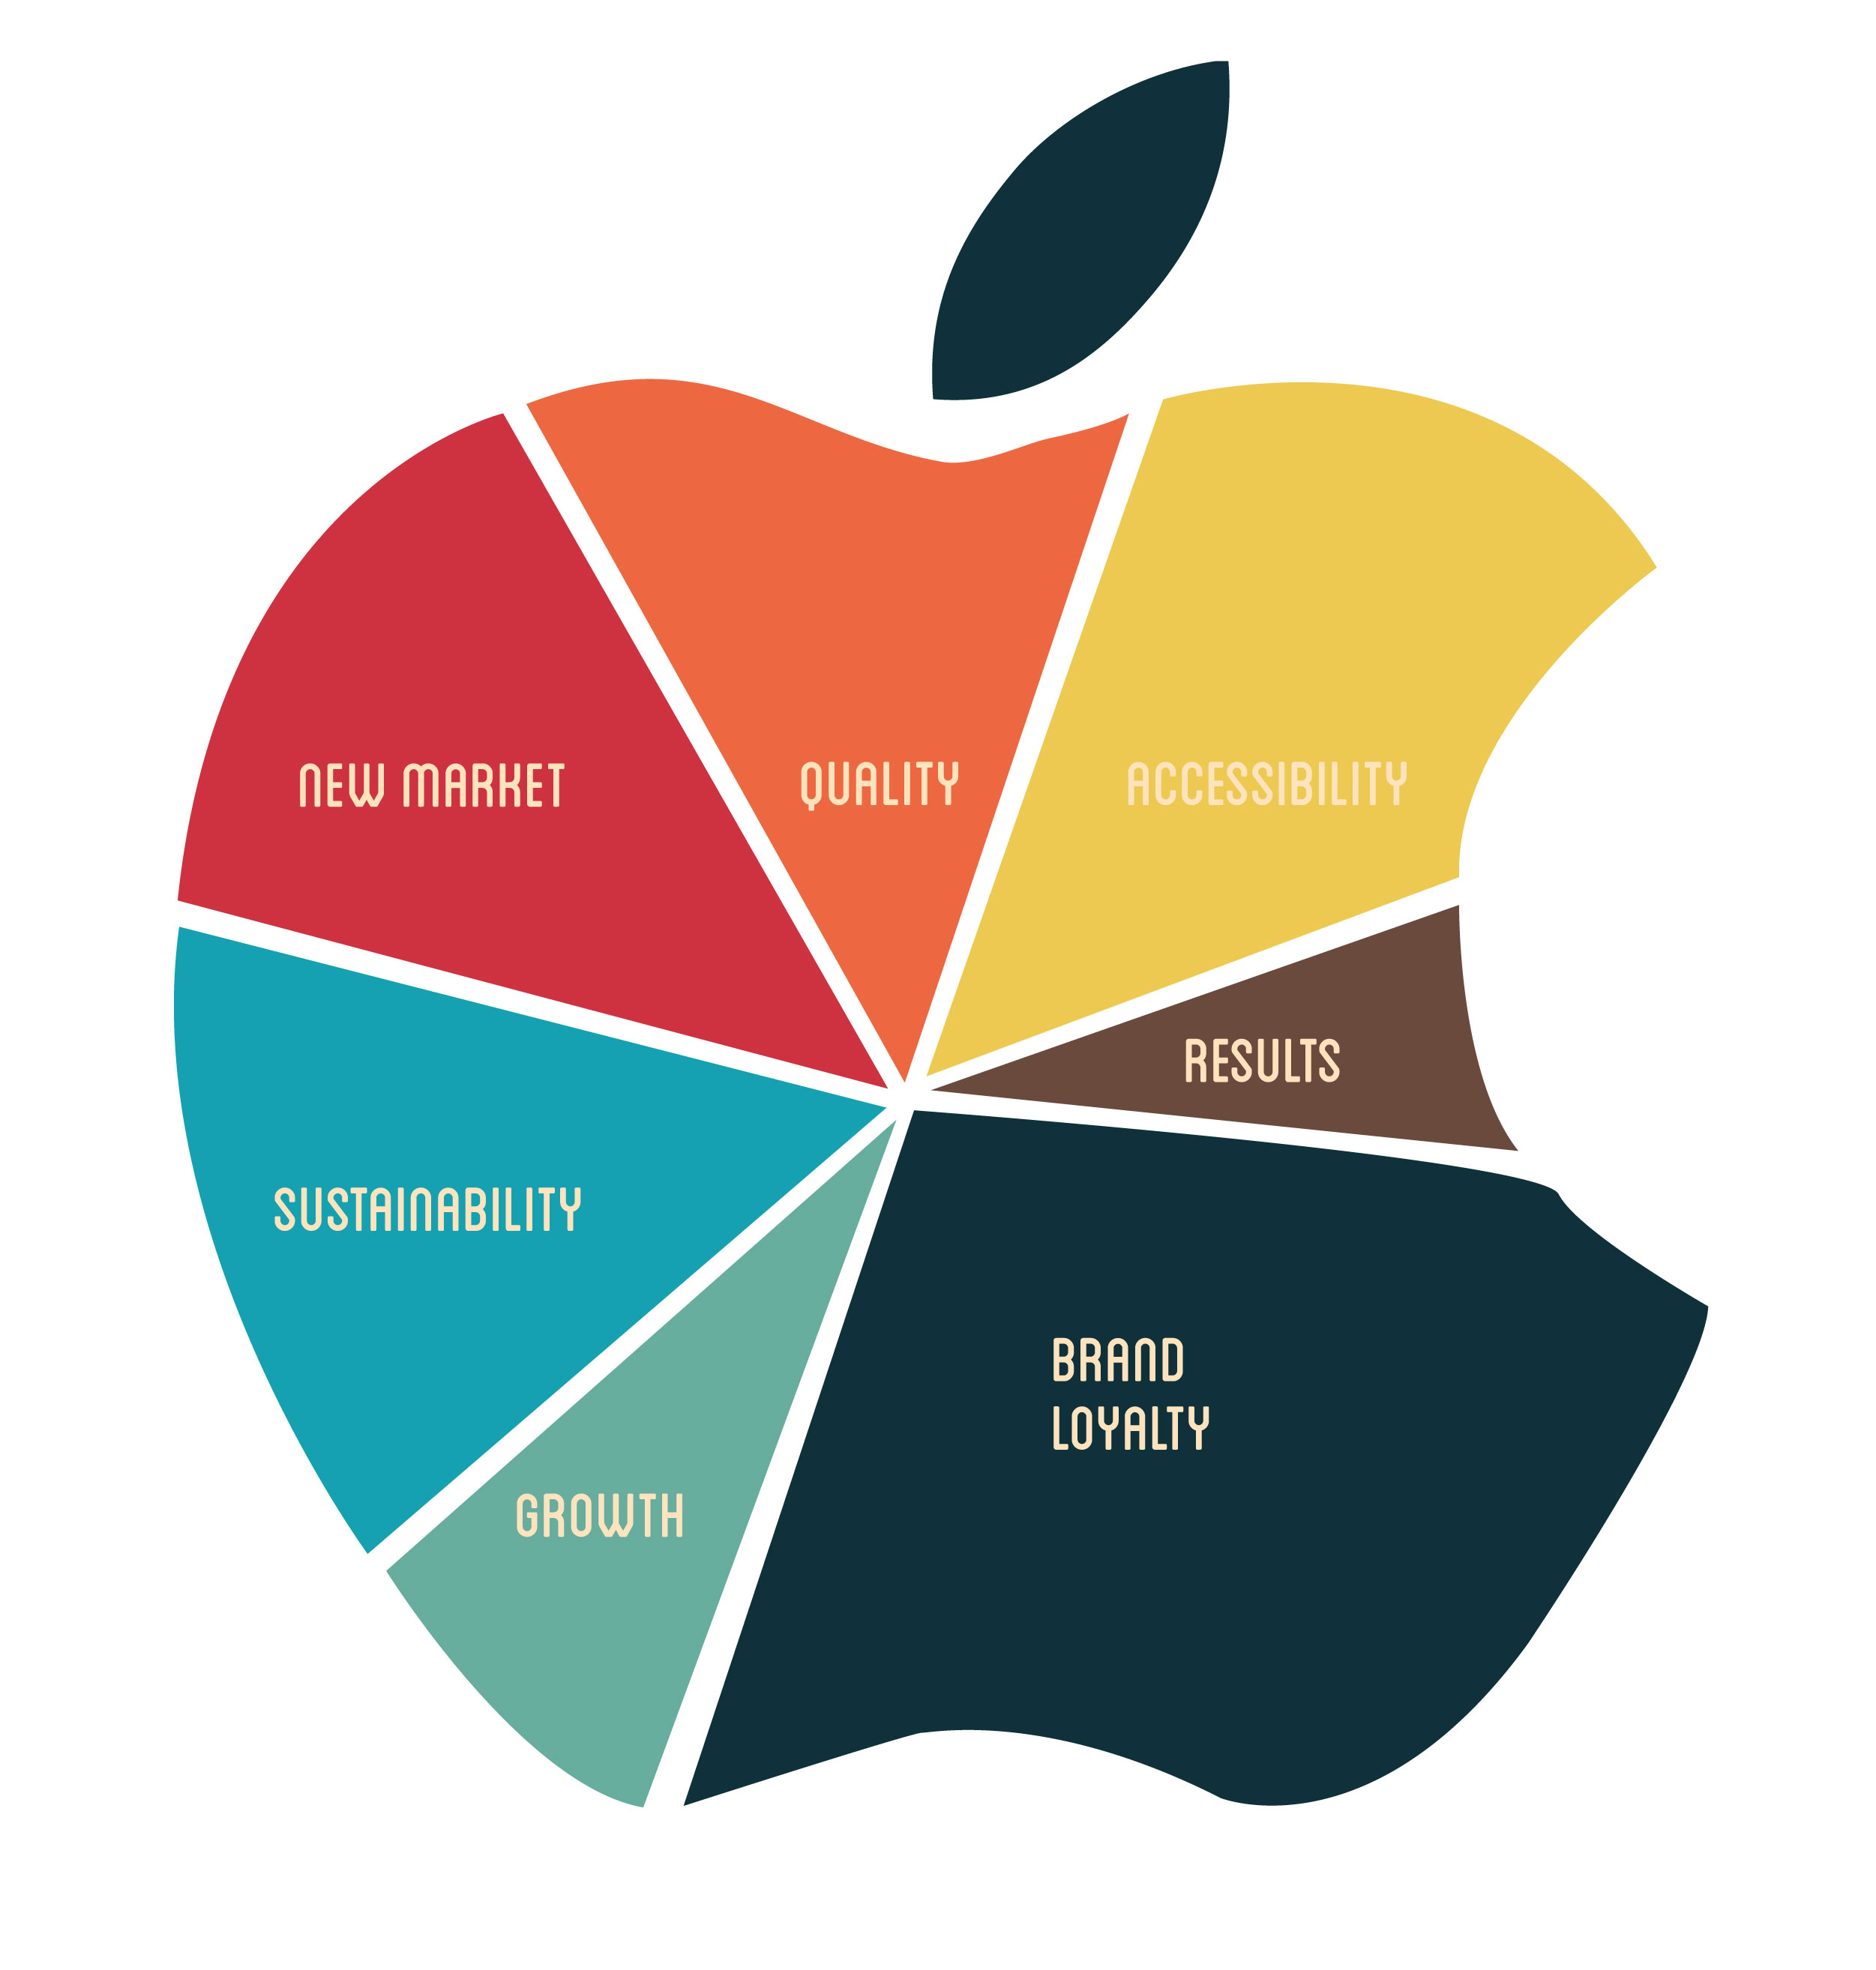 marketing segmentation targeting and positioning of apple iphone 4s Marketing analysis for samsung  and we have chosen close competitors mainly apple iphone 4s and  to both segments, positioning claims for a.